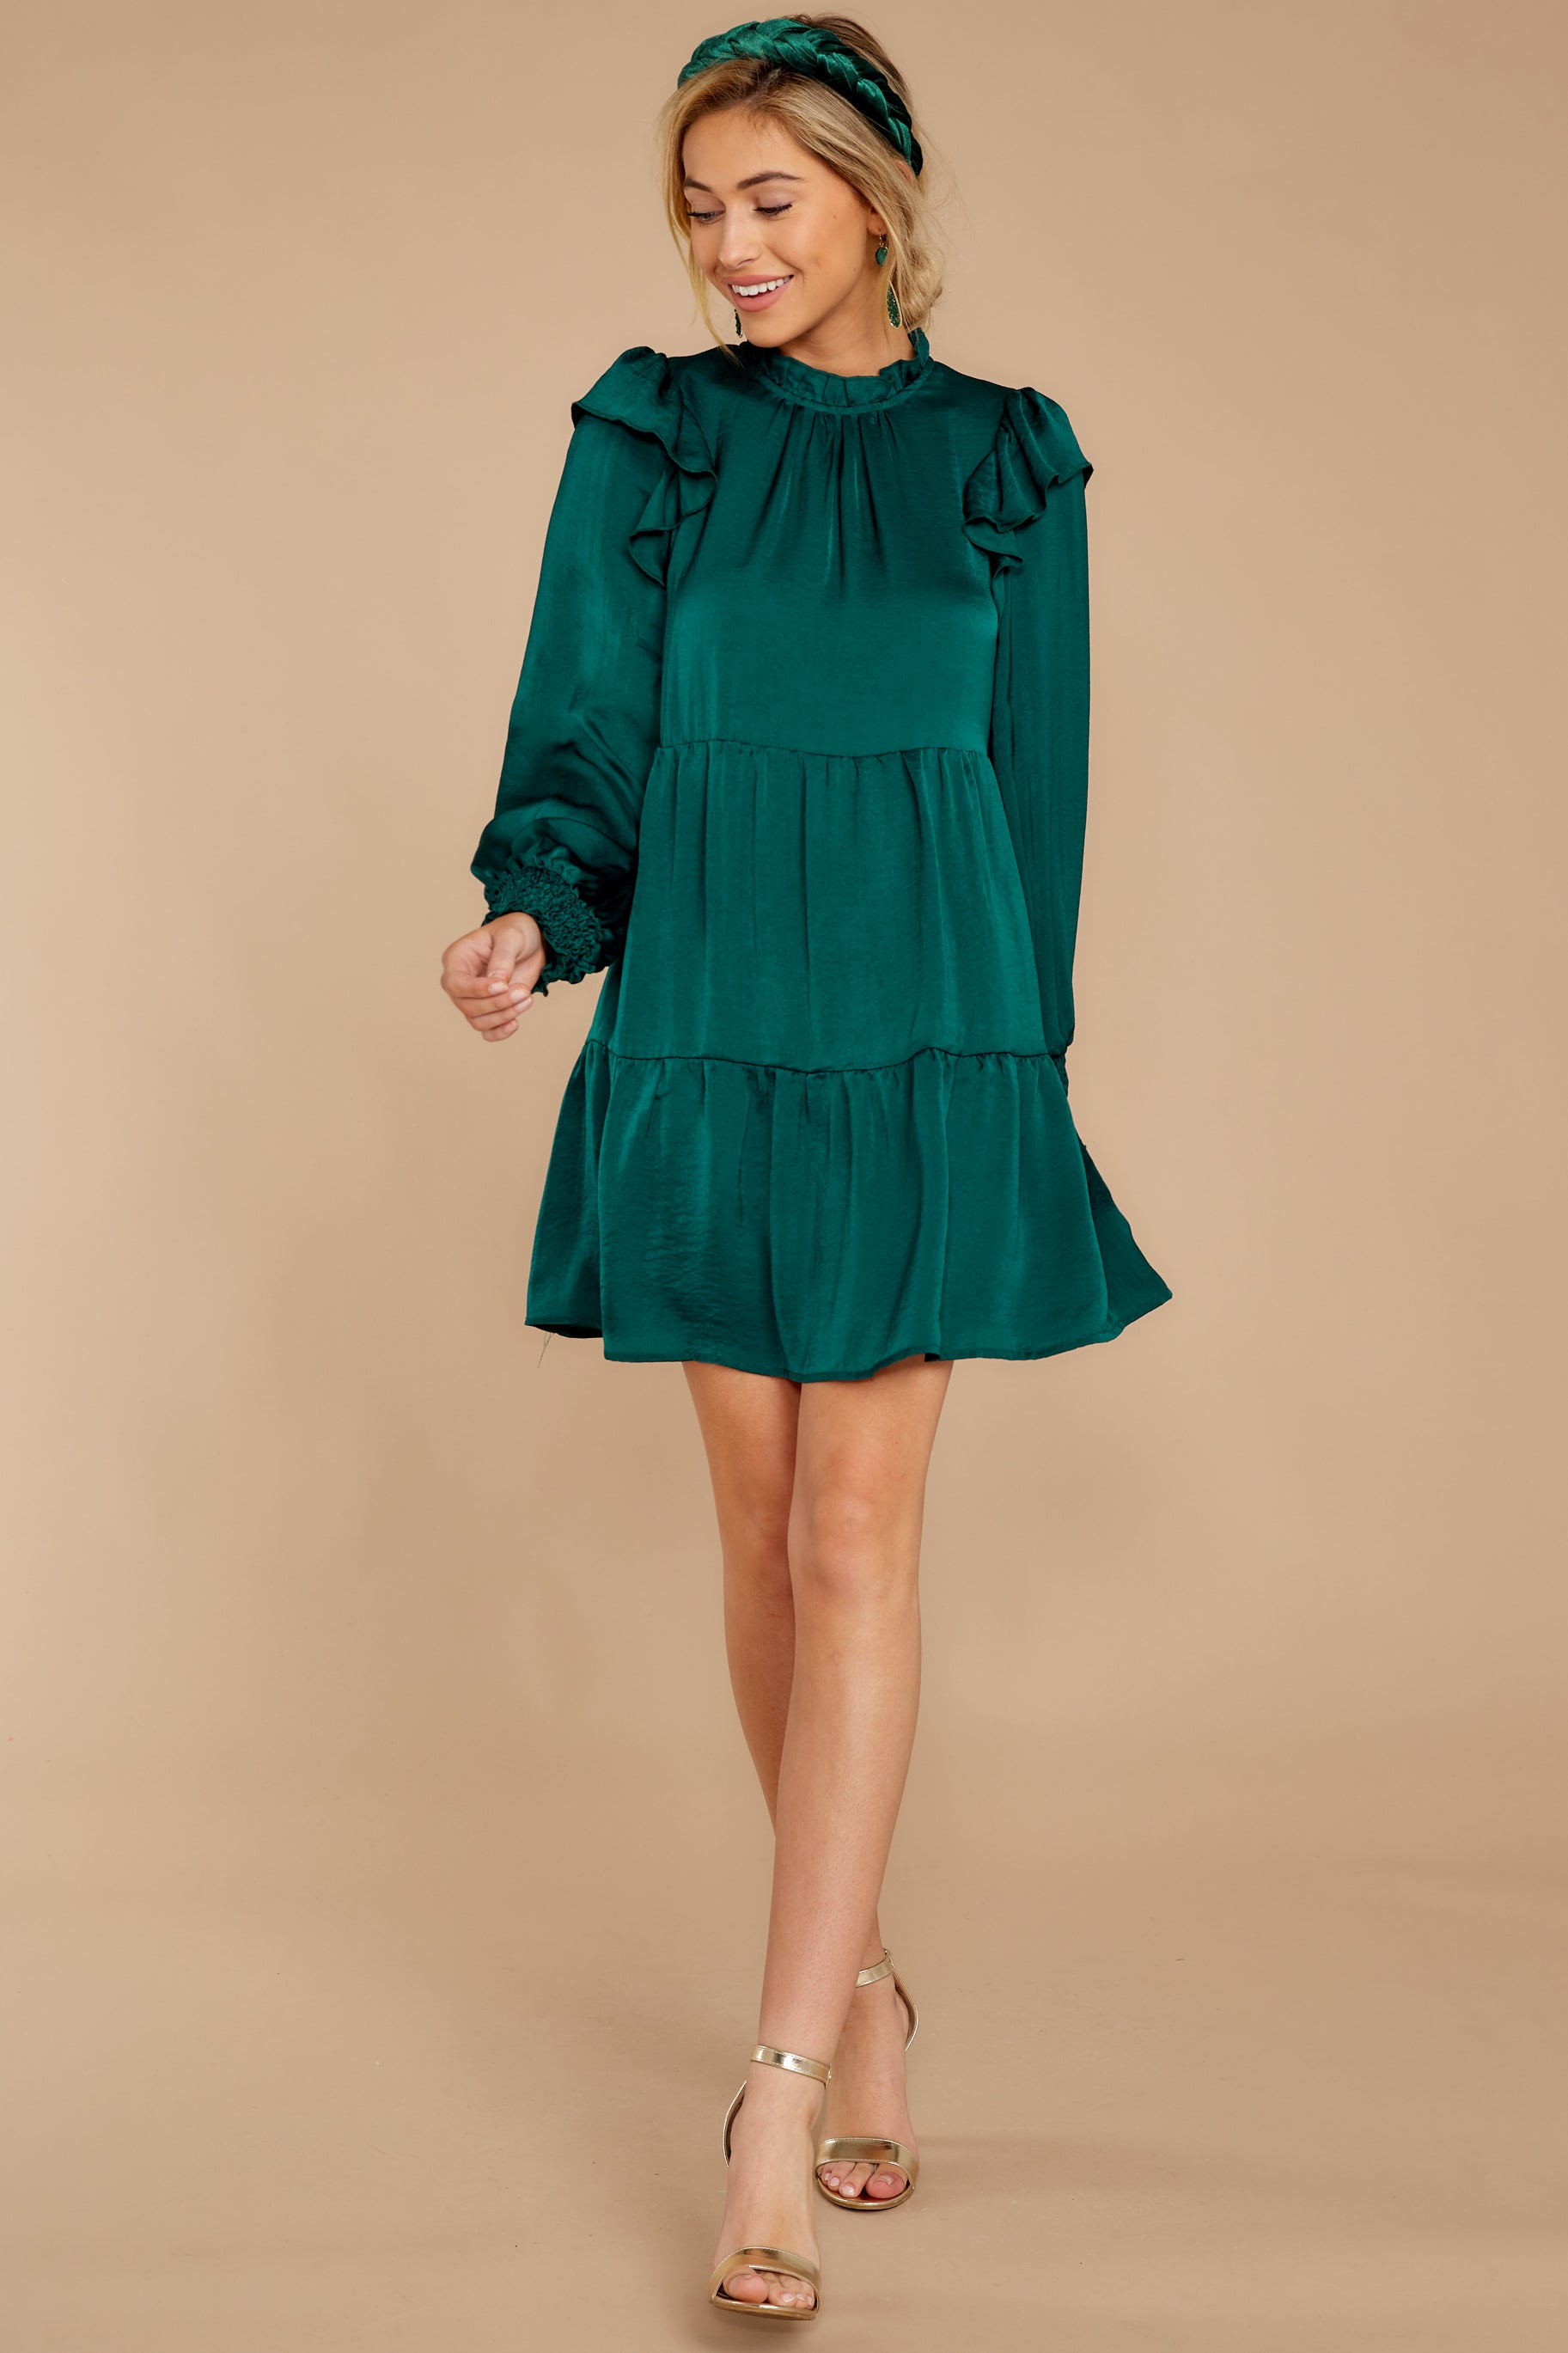 2 On My Level Emerald Green Dress at reddressboutique.com